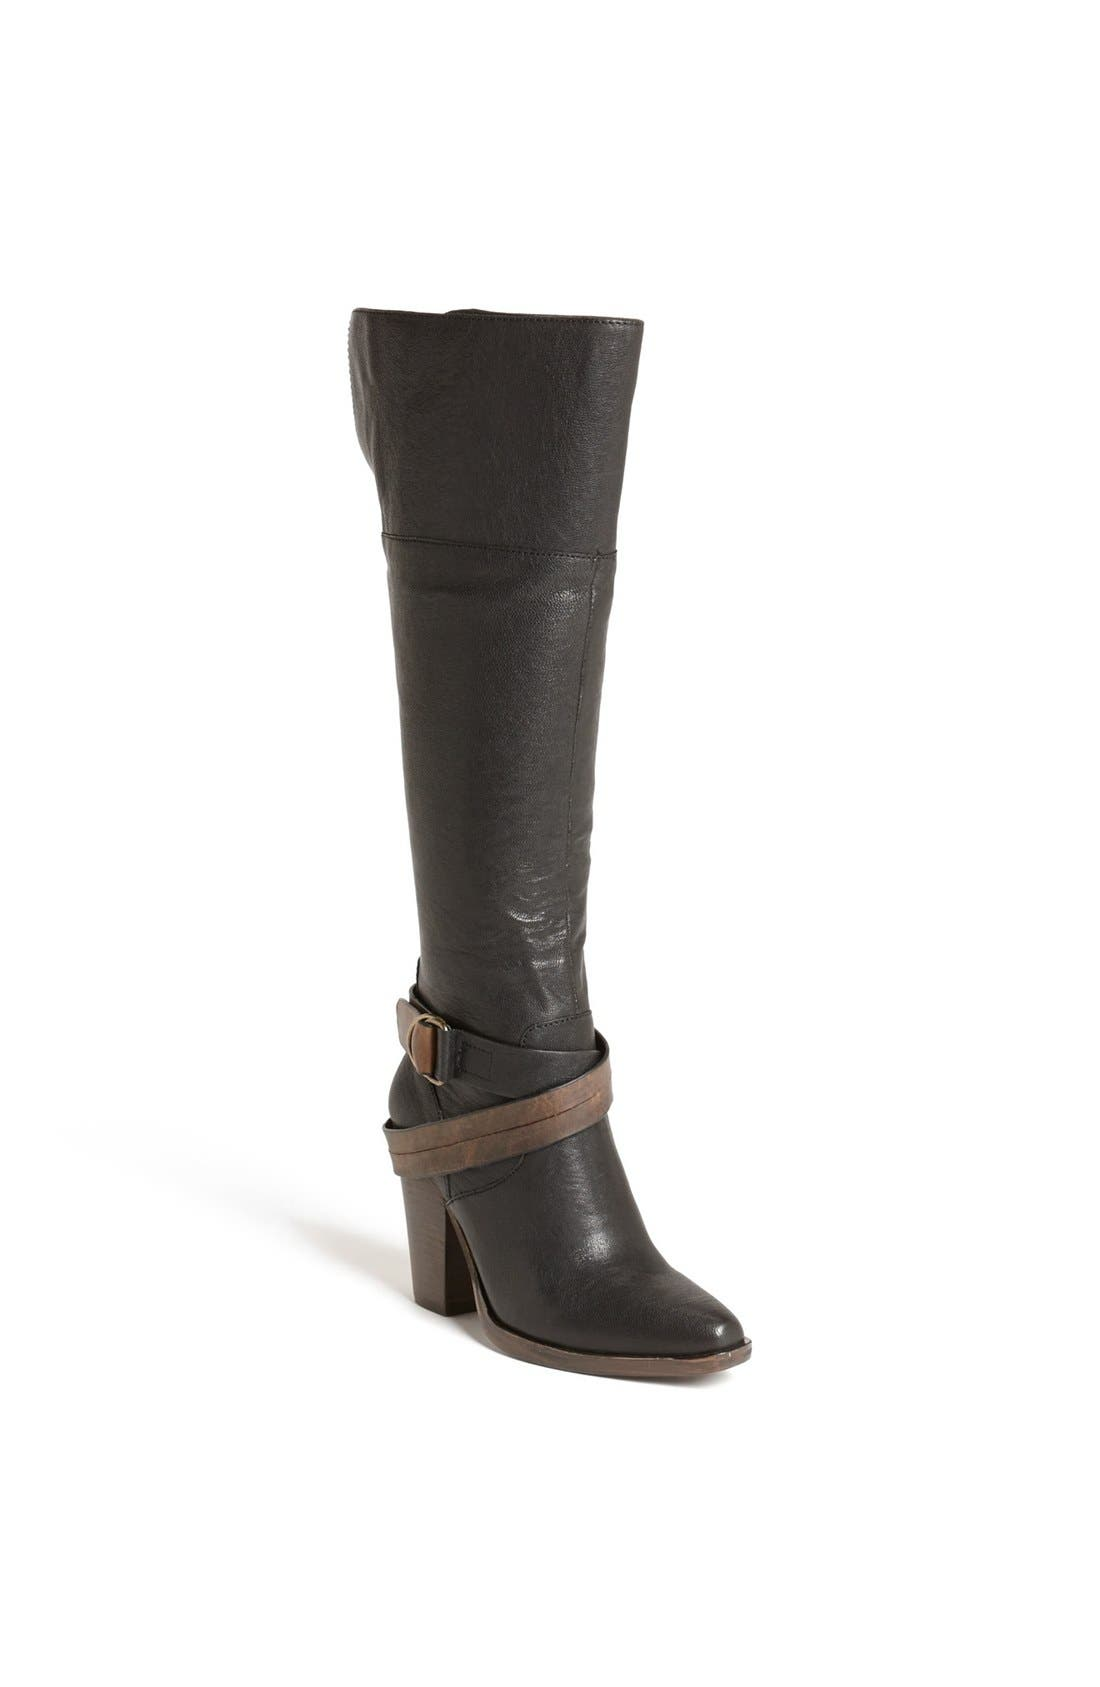 Main Image - Steve Madden 'Rockiie' Over the Knee Boot